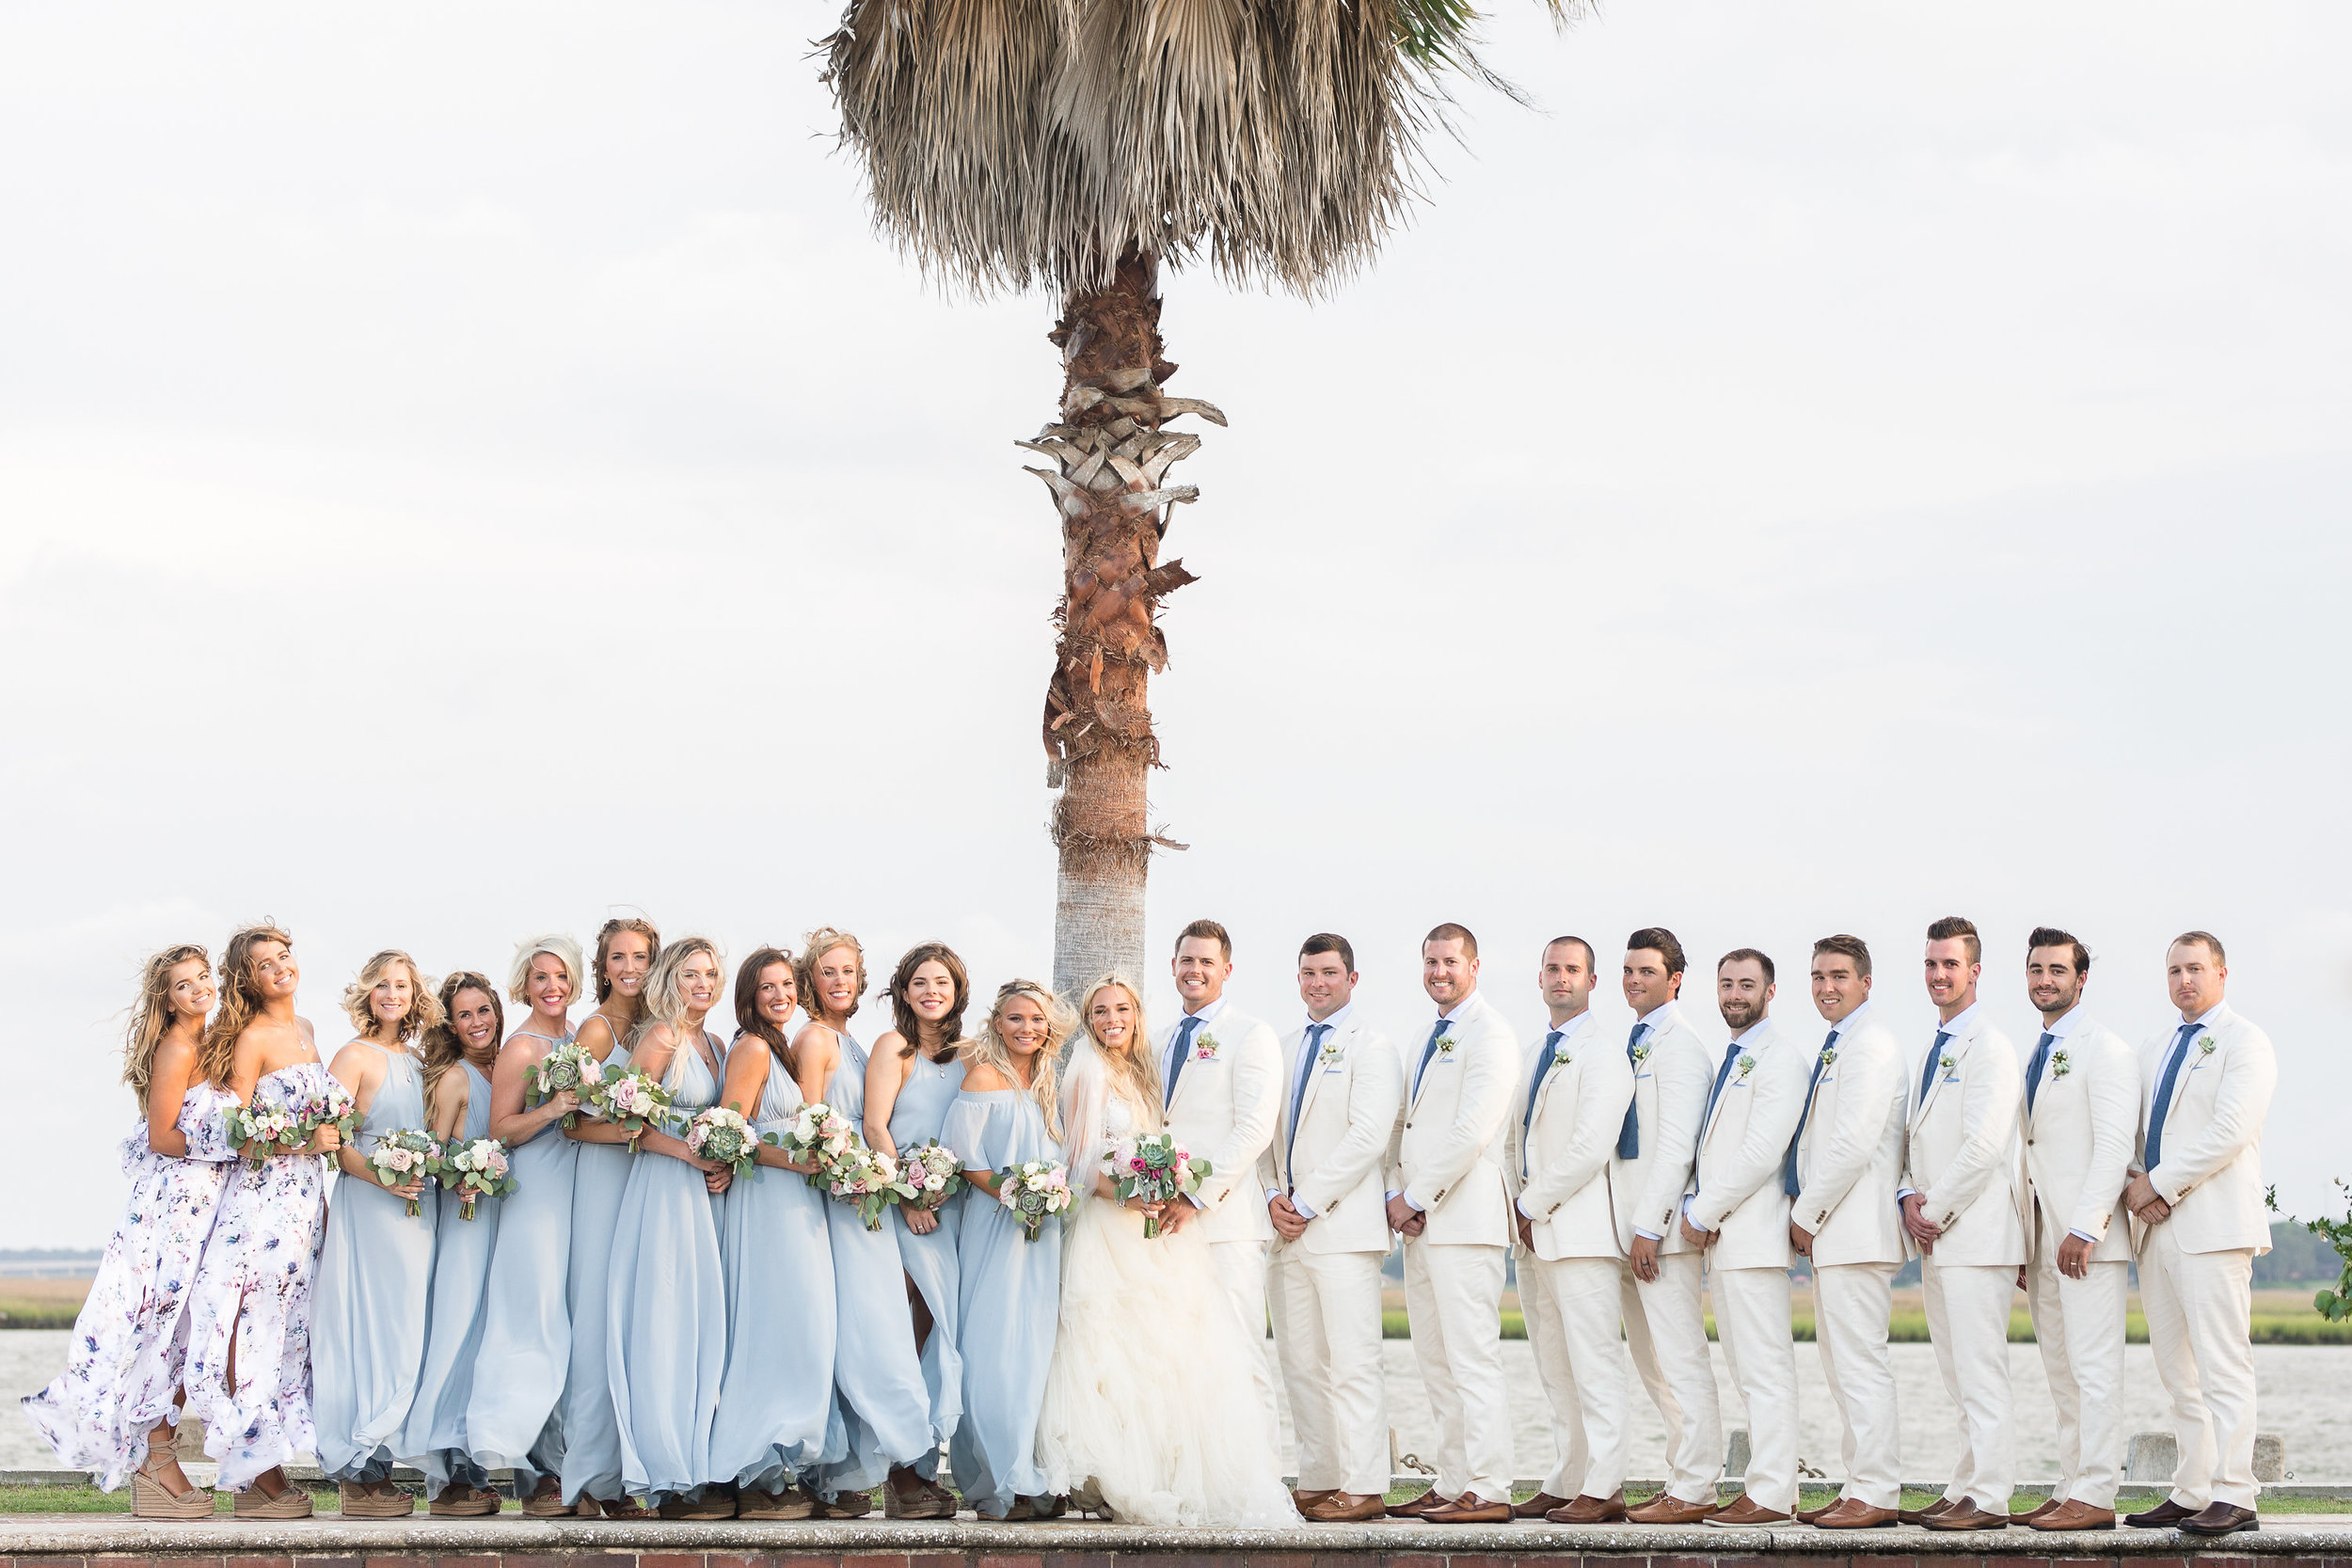 Bridal Party portraits at Beaufort SC wedding  //  Hilton Head photos by Garter + Whiskey